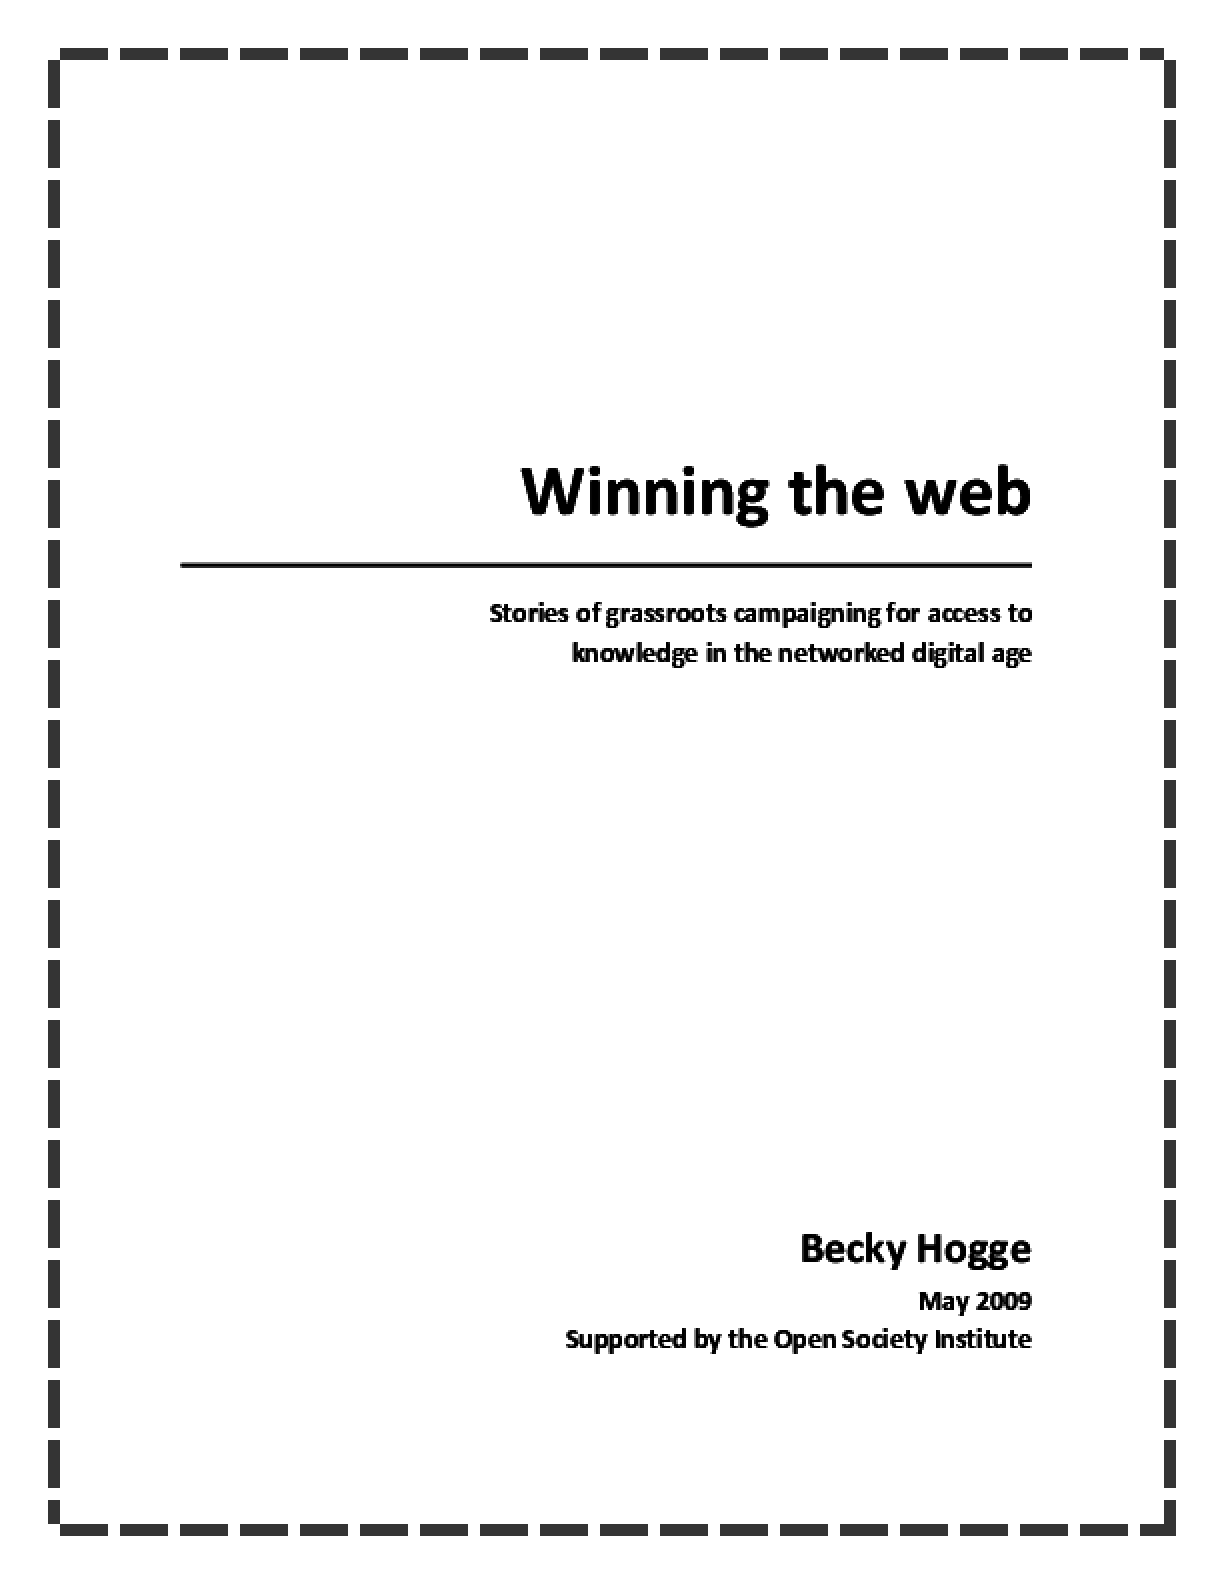 Winning the Web: Stories of Grassroots Campaigning for Access to Knowledge in the Networked Digital Age